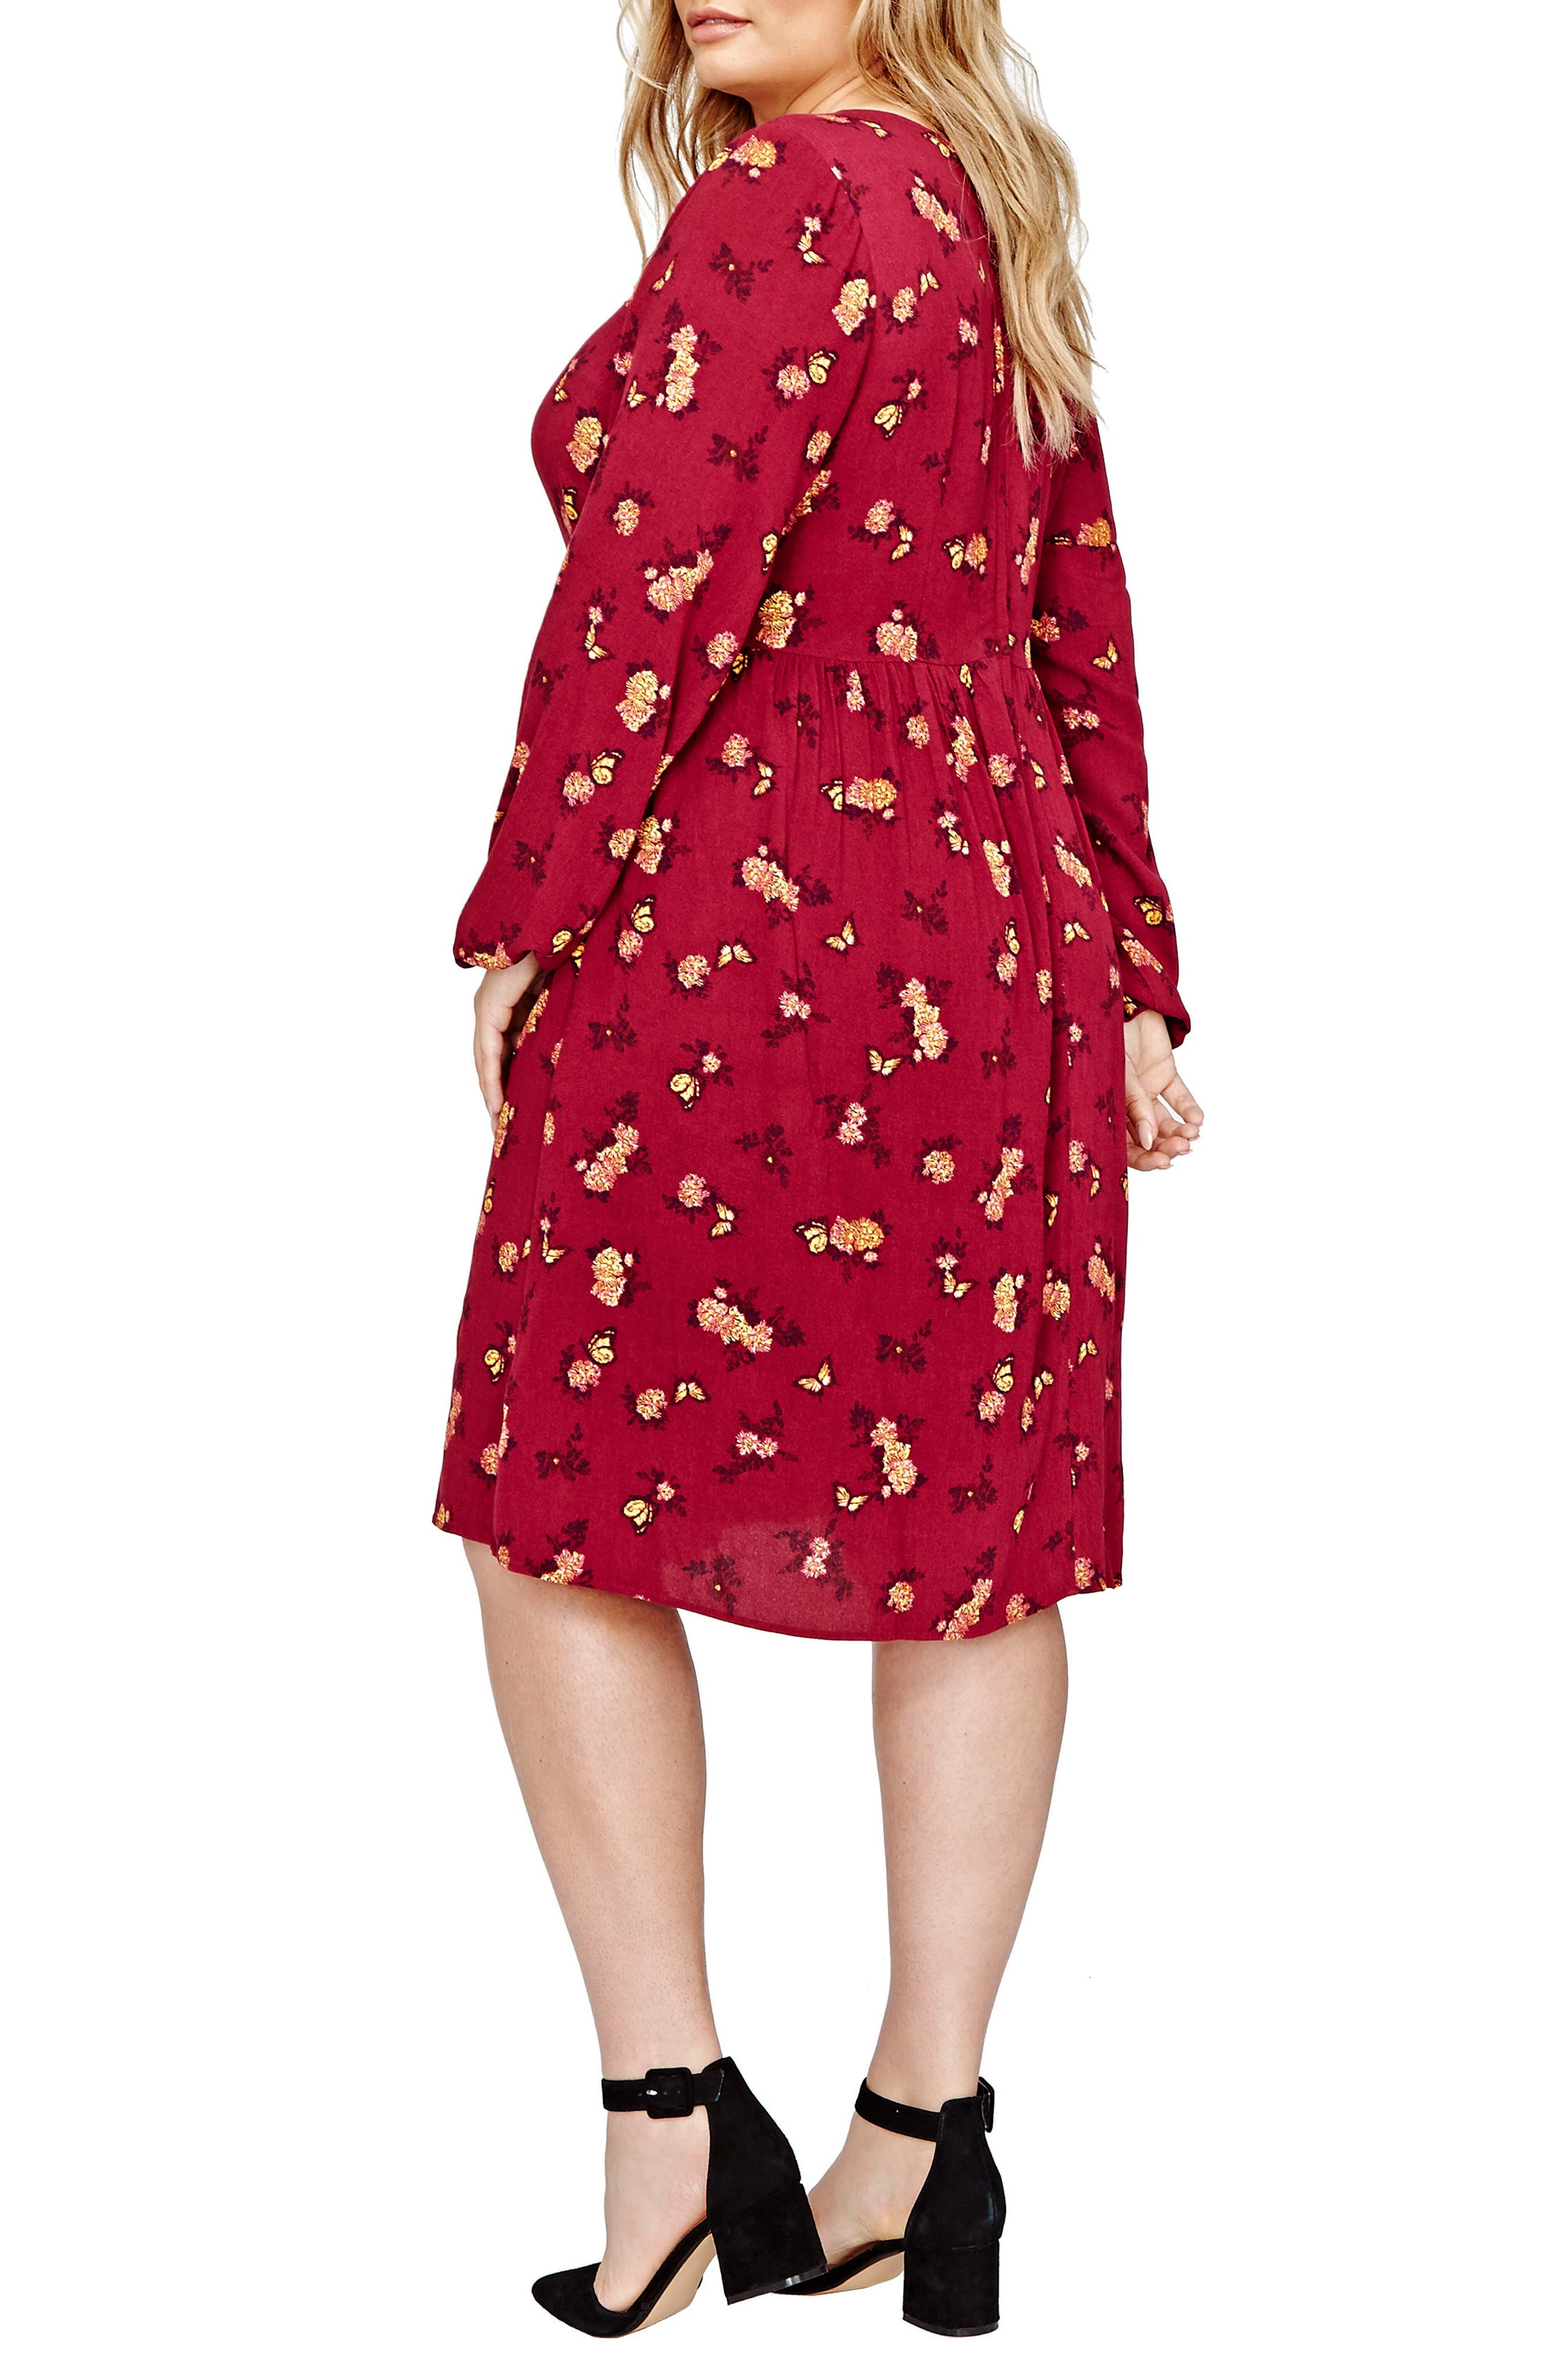 Floral Swing Dress,                             Alternate thumbnail 2, color,                             Rhododendron Floral